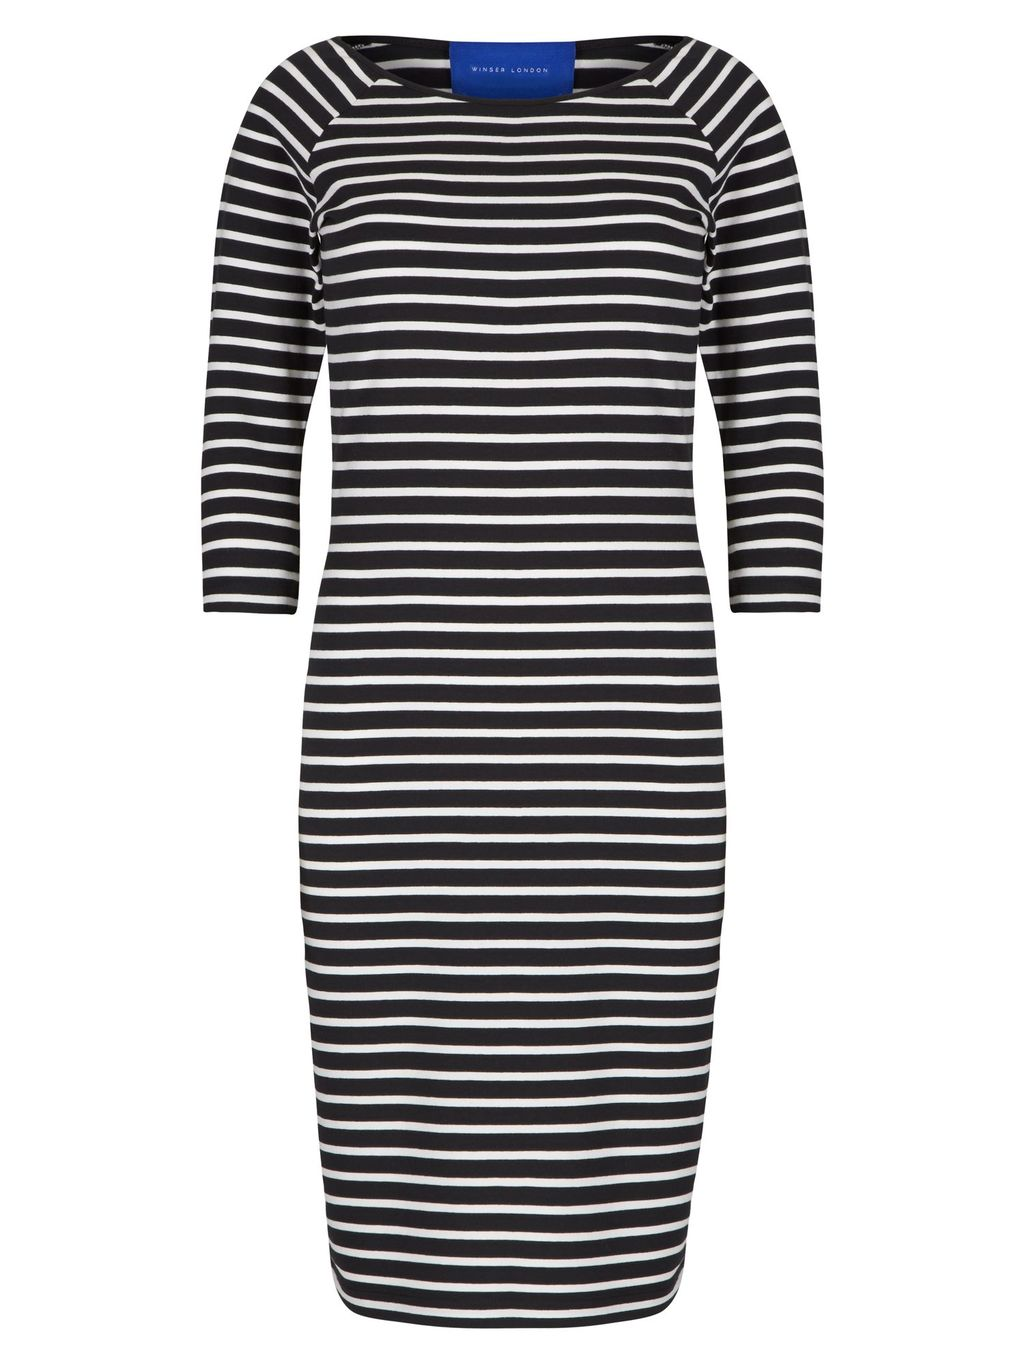 Cotton Jersey Striped Dress, Black - fit: tight; pattern: horizontal stripes; style: bodycon; hip detail: fitted at hip; secondary colour: white; predominant colour: black; occasions: casual; length: just above the knee; fibres: cotton - 100%; neckline: crew; sleeve length: half sleeve; sleeve style: standard; texture group: jersey - clingy; pattern type: fabric; multicoloured: multicoloured; season: s/s 2016; wardrobe: basic